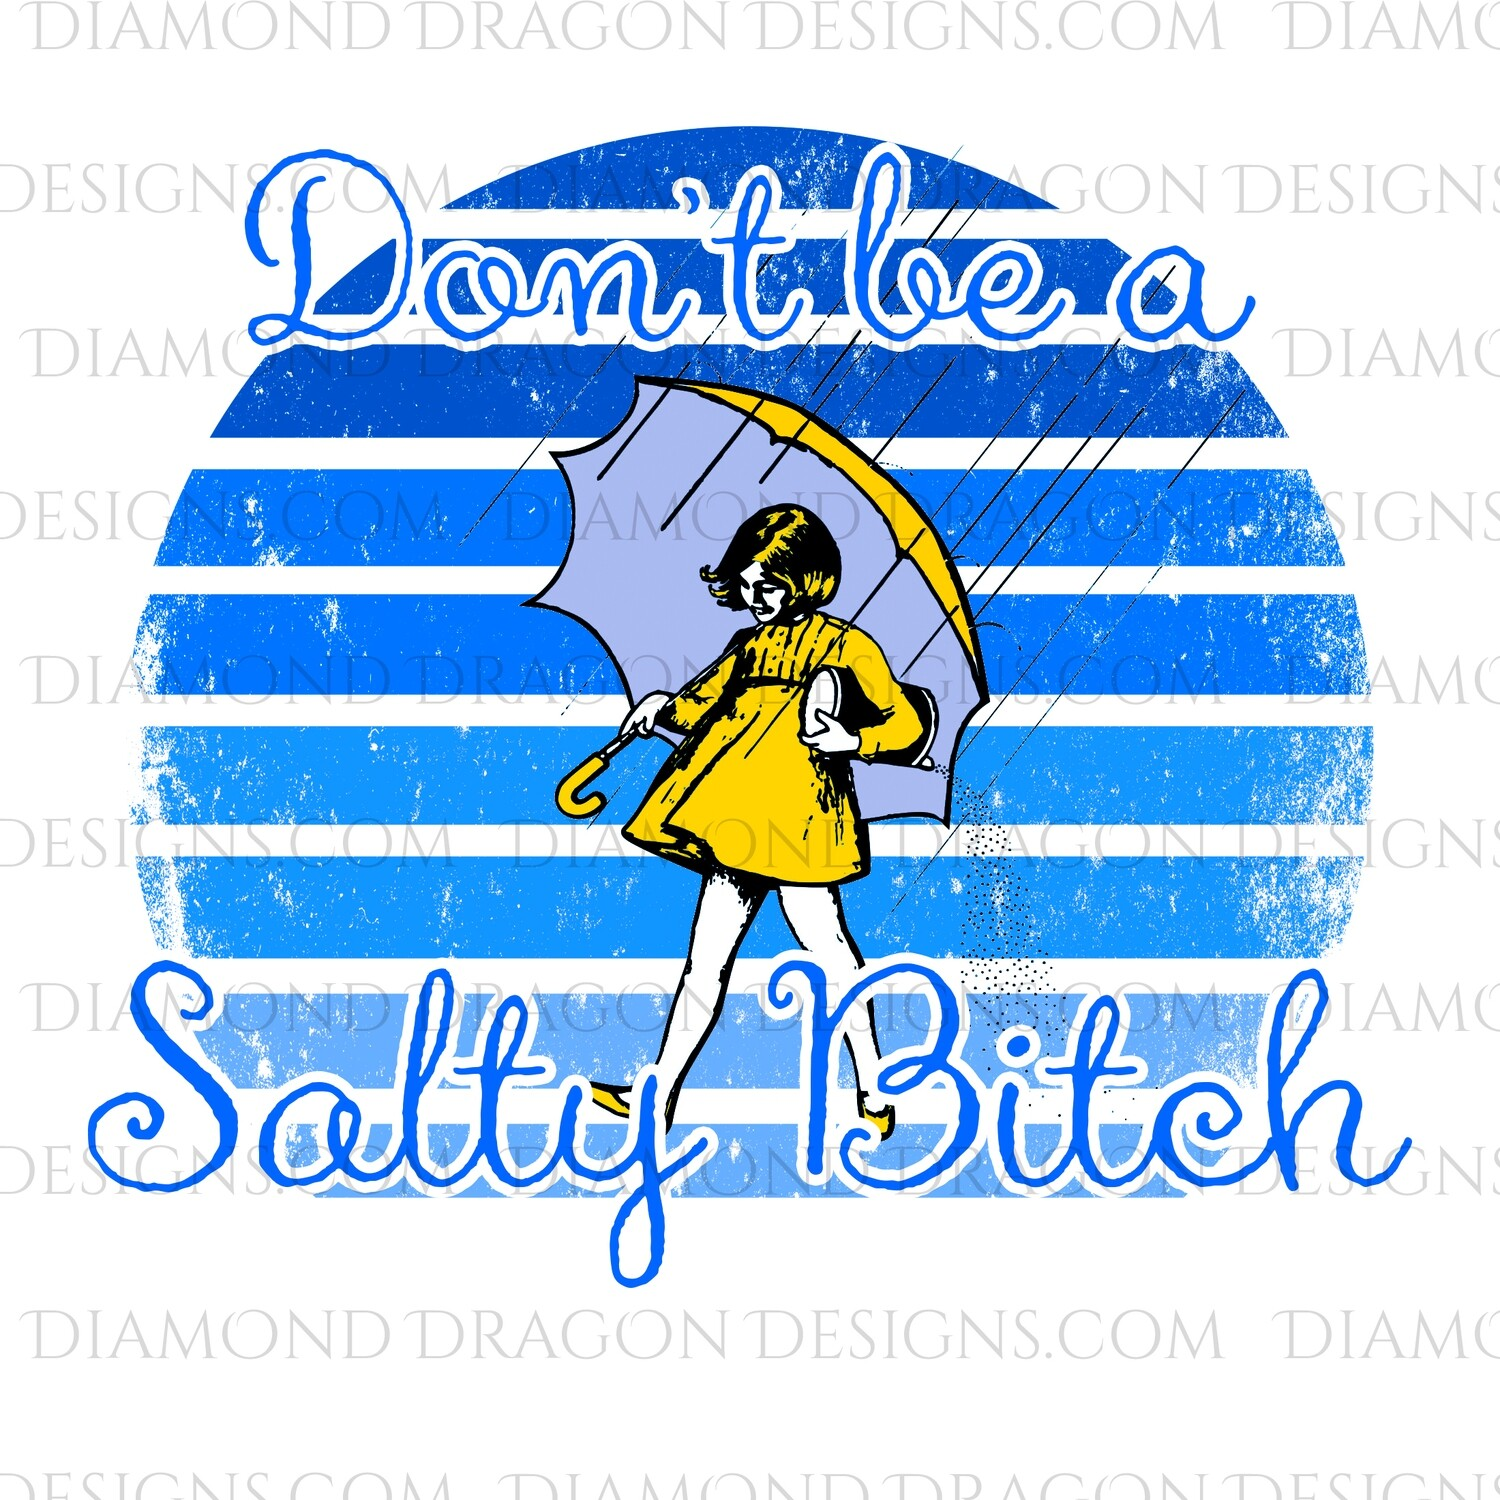 Quotes - Yellow, Don't Be a Salty Bitch, Waterslide